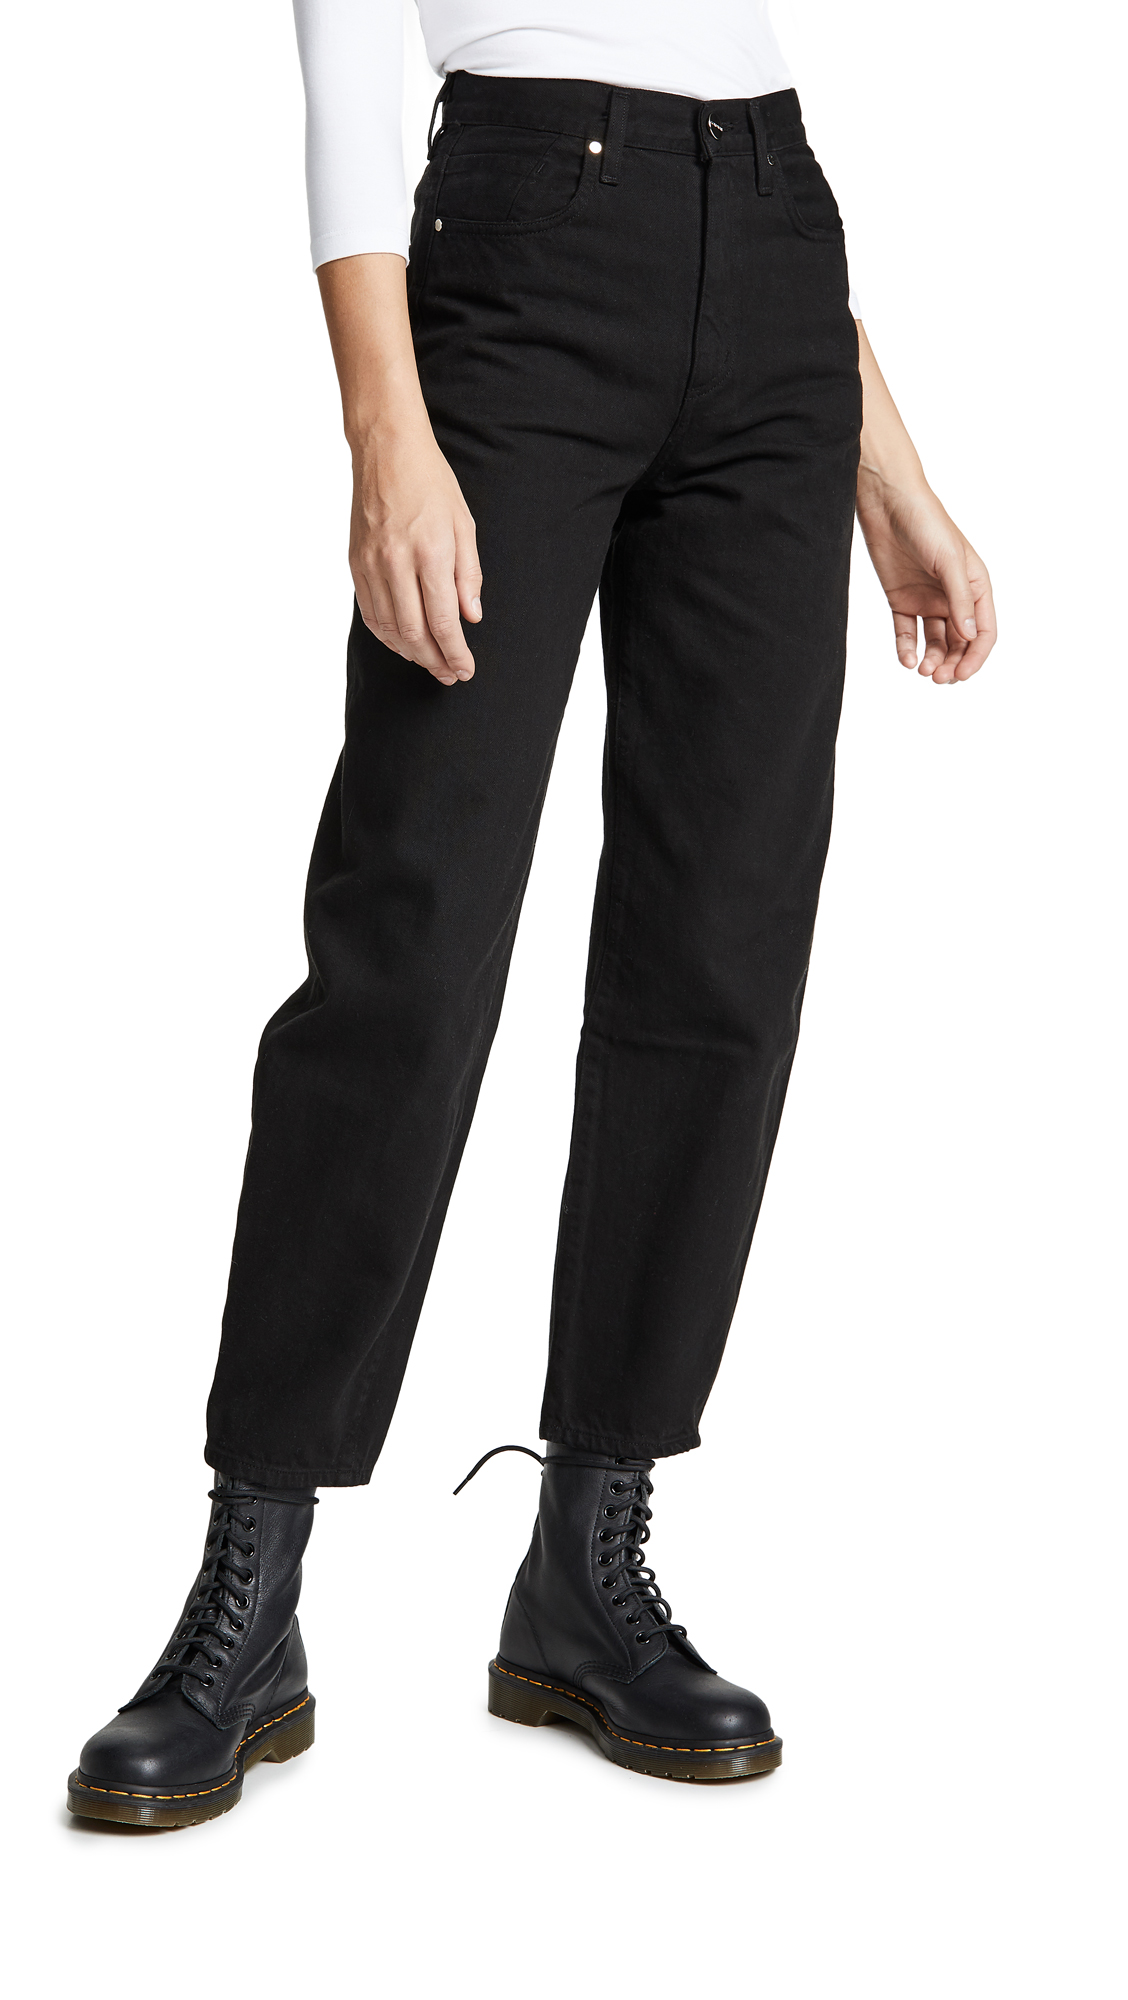 GOLDSIGN The Curved Jeans in Black